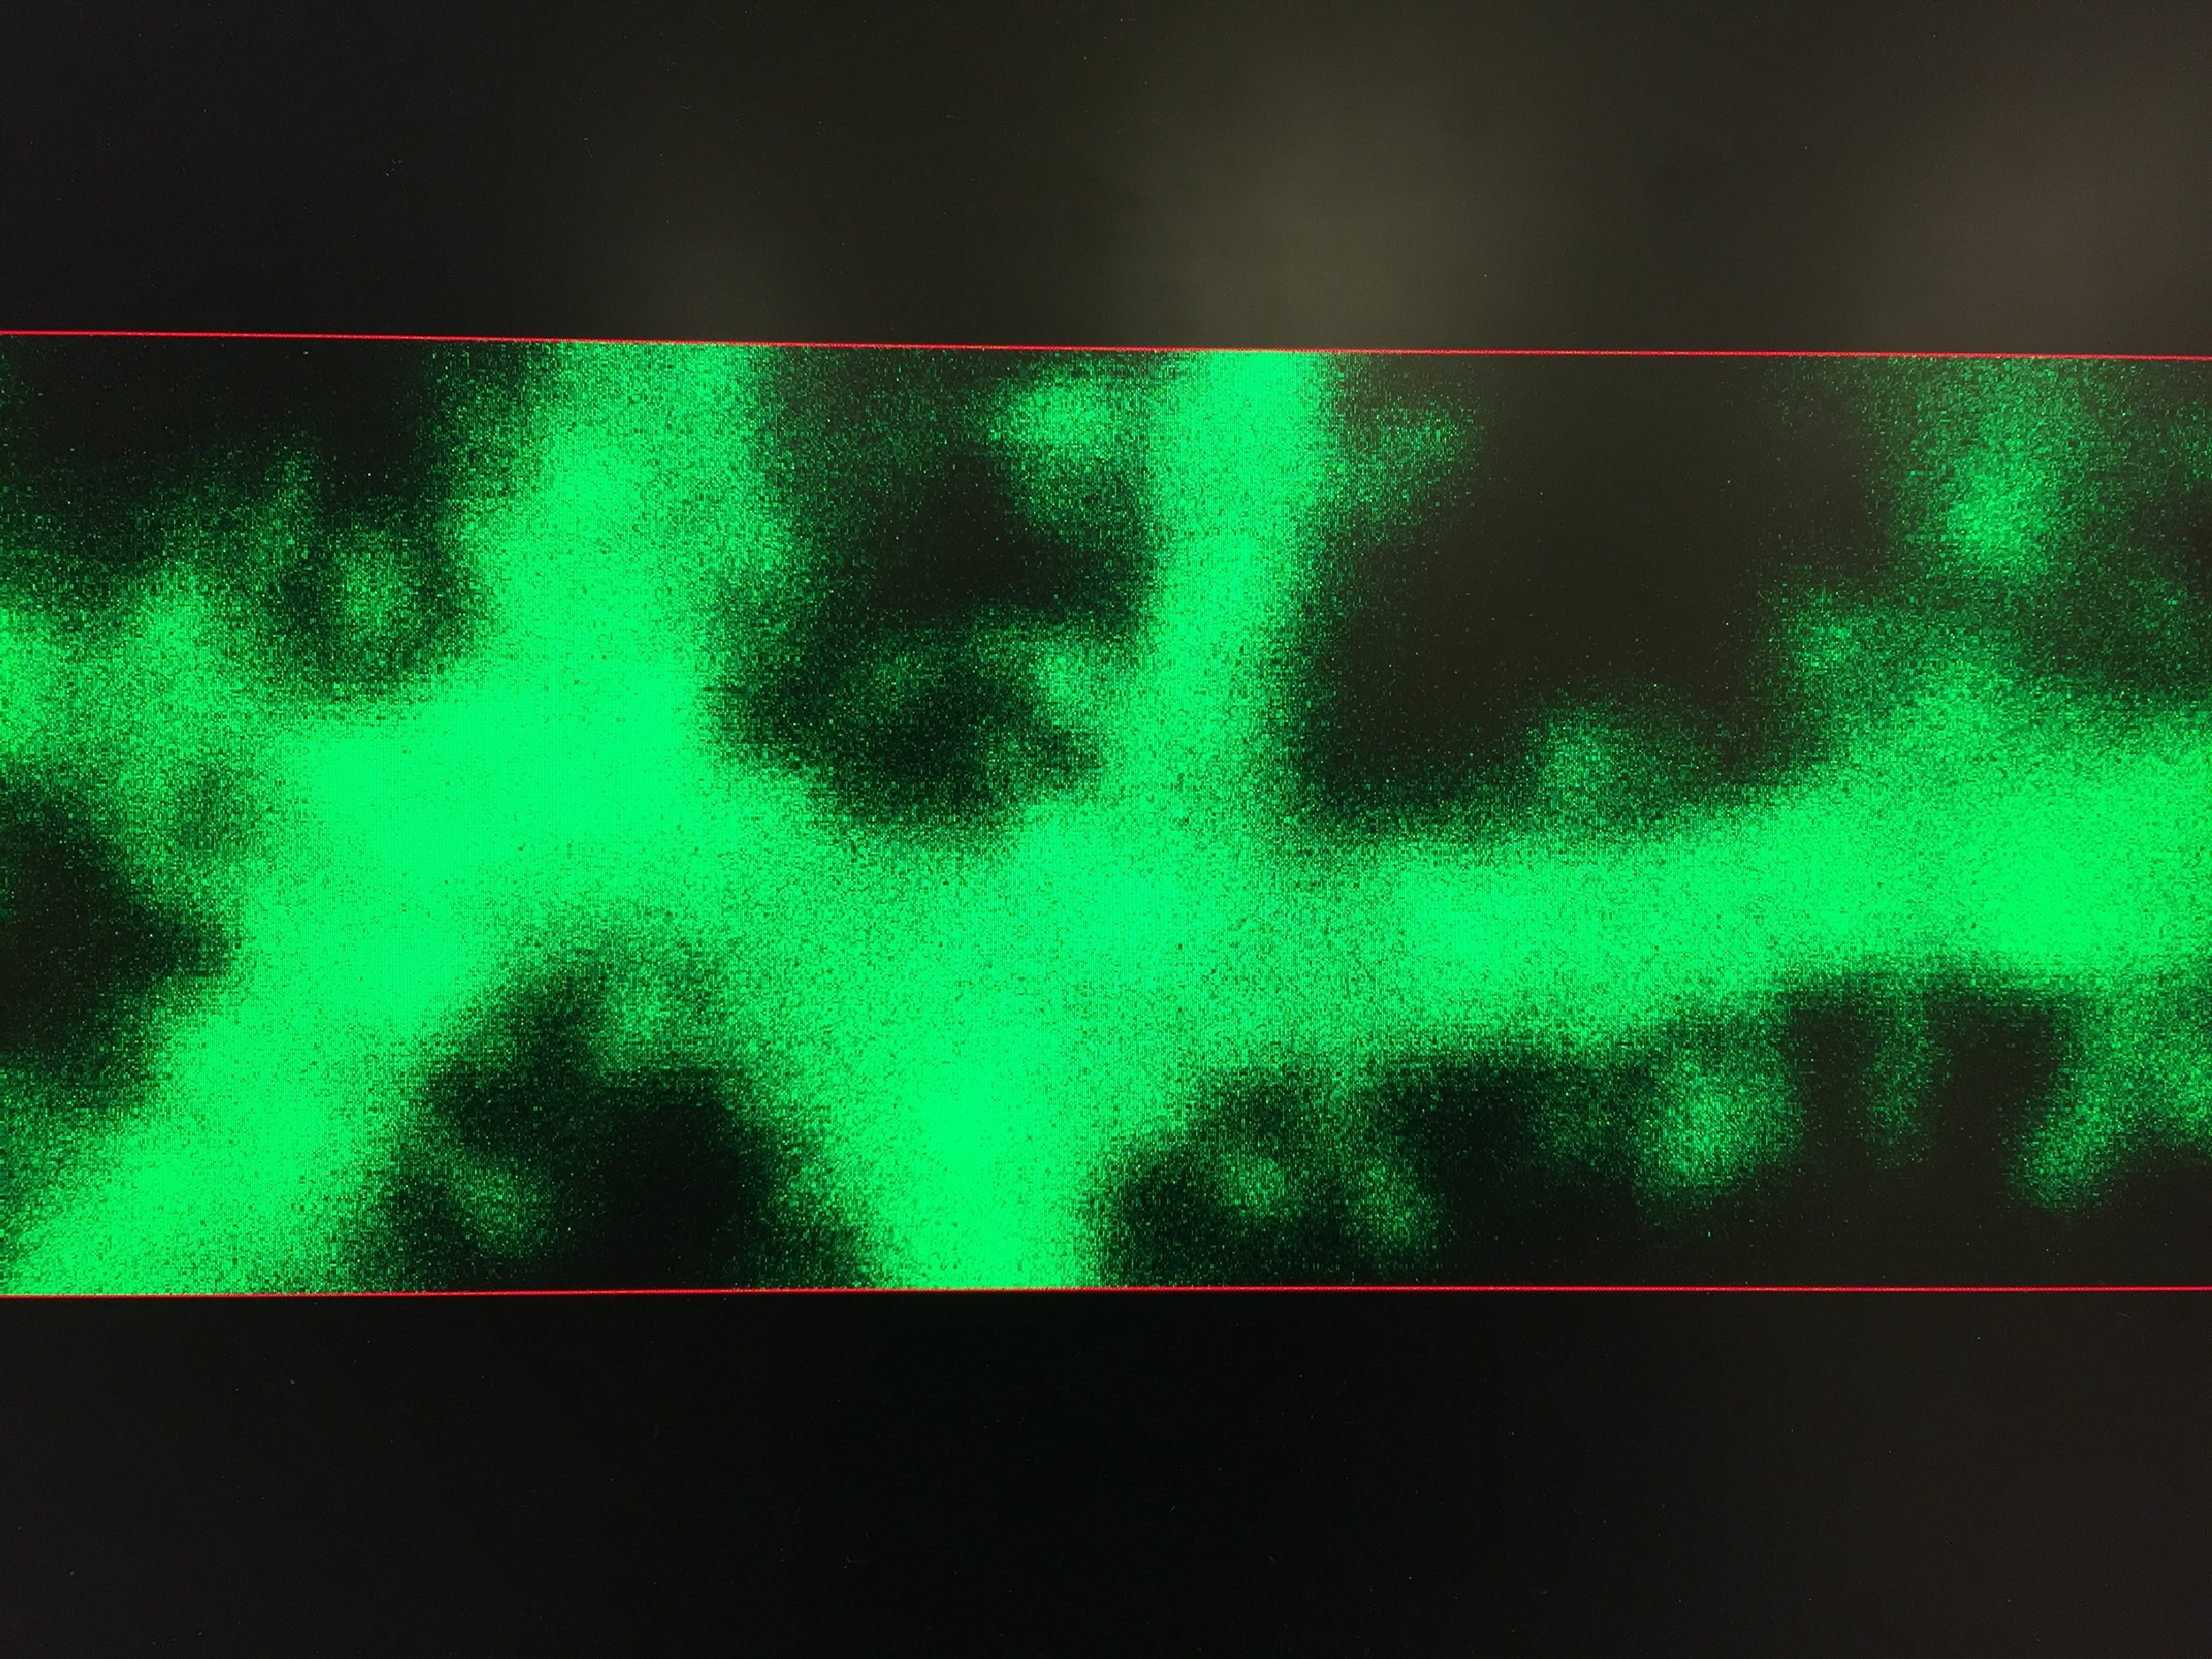 A dendrite filled with green fluorescent dye